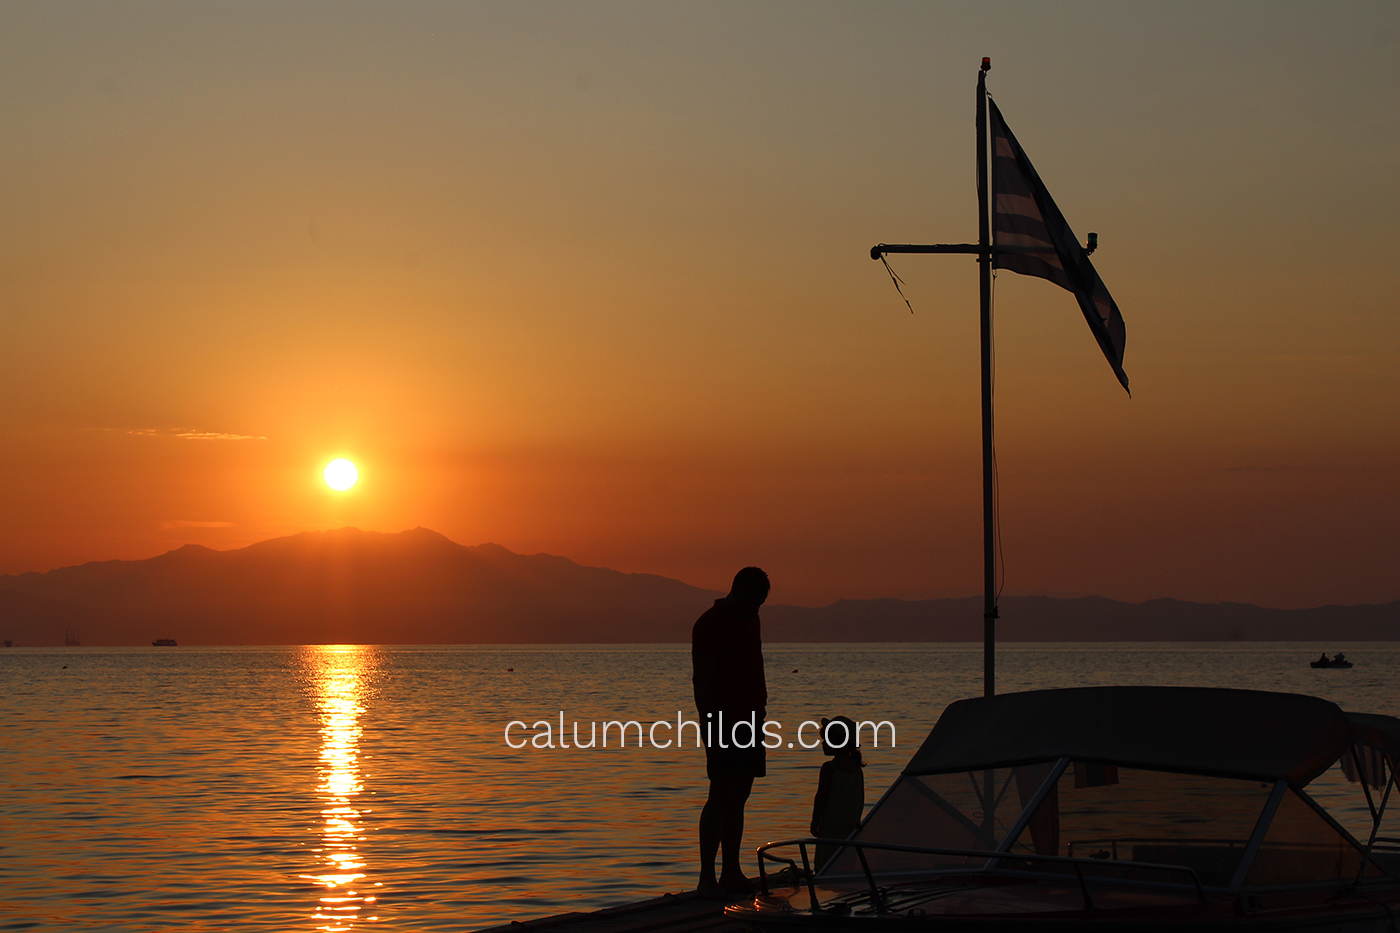 An adult and a child stand beside a boat, with a Greek flag hanging on a pole in front of them. To the left of them is an orange sun.